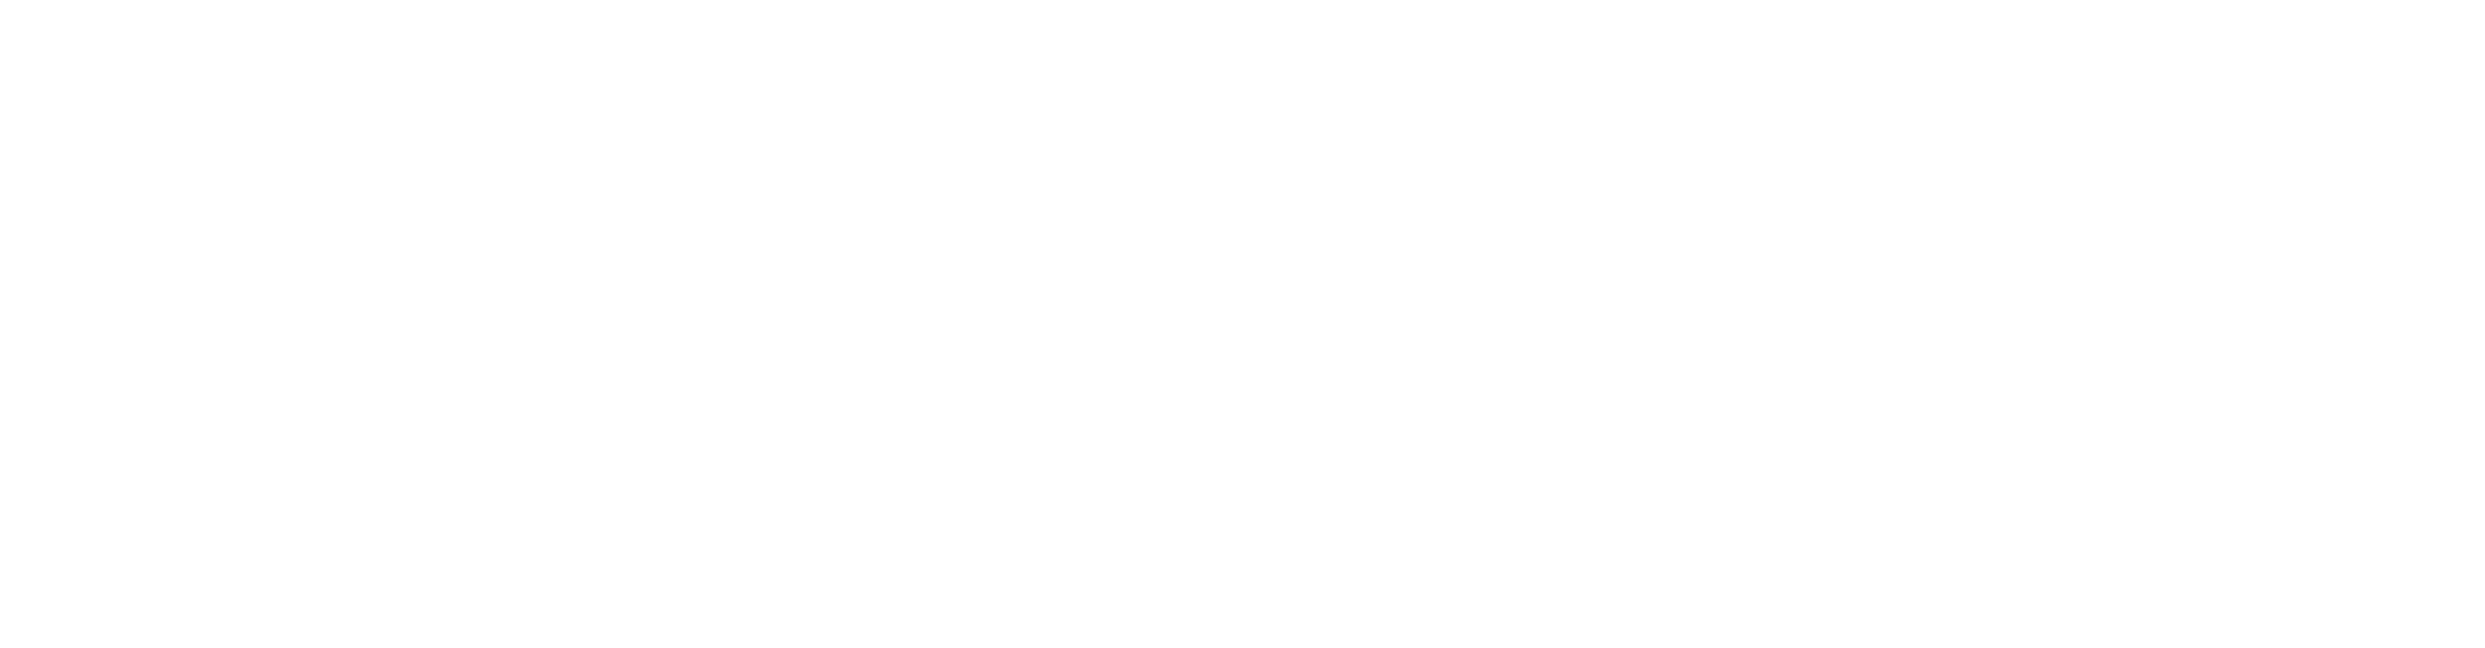 Dreamer Luxury Real Estate